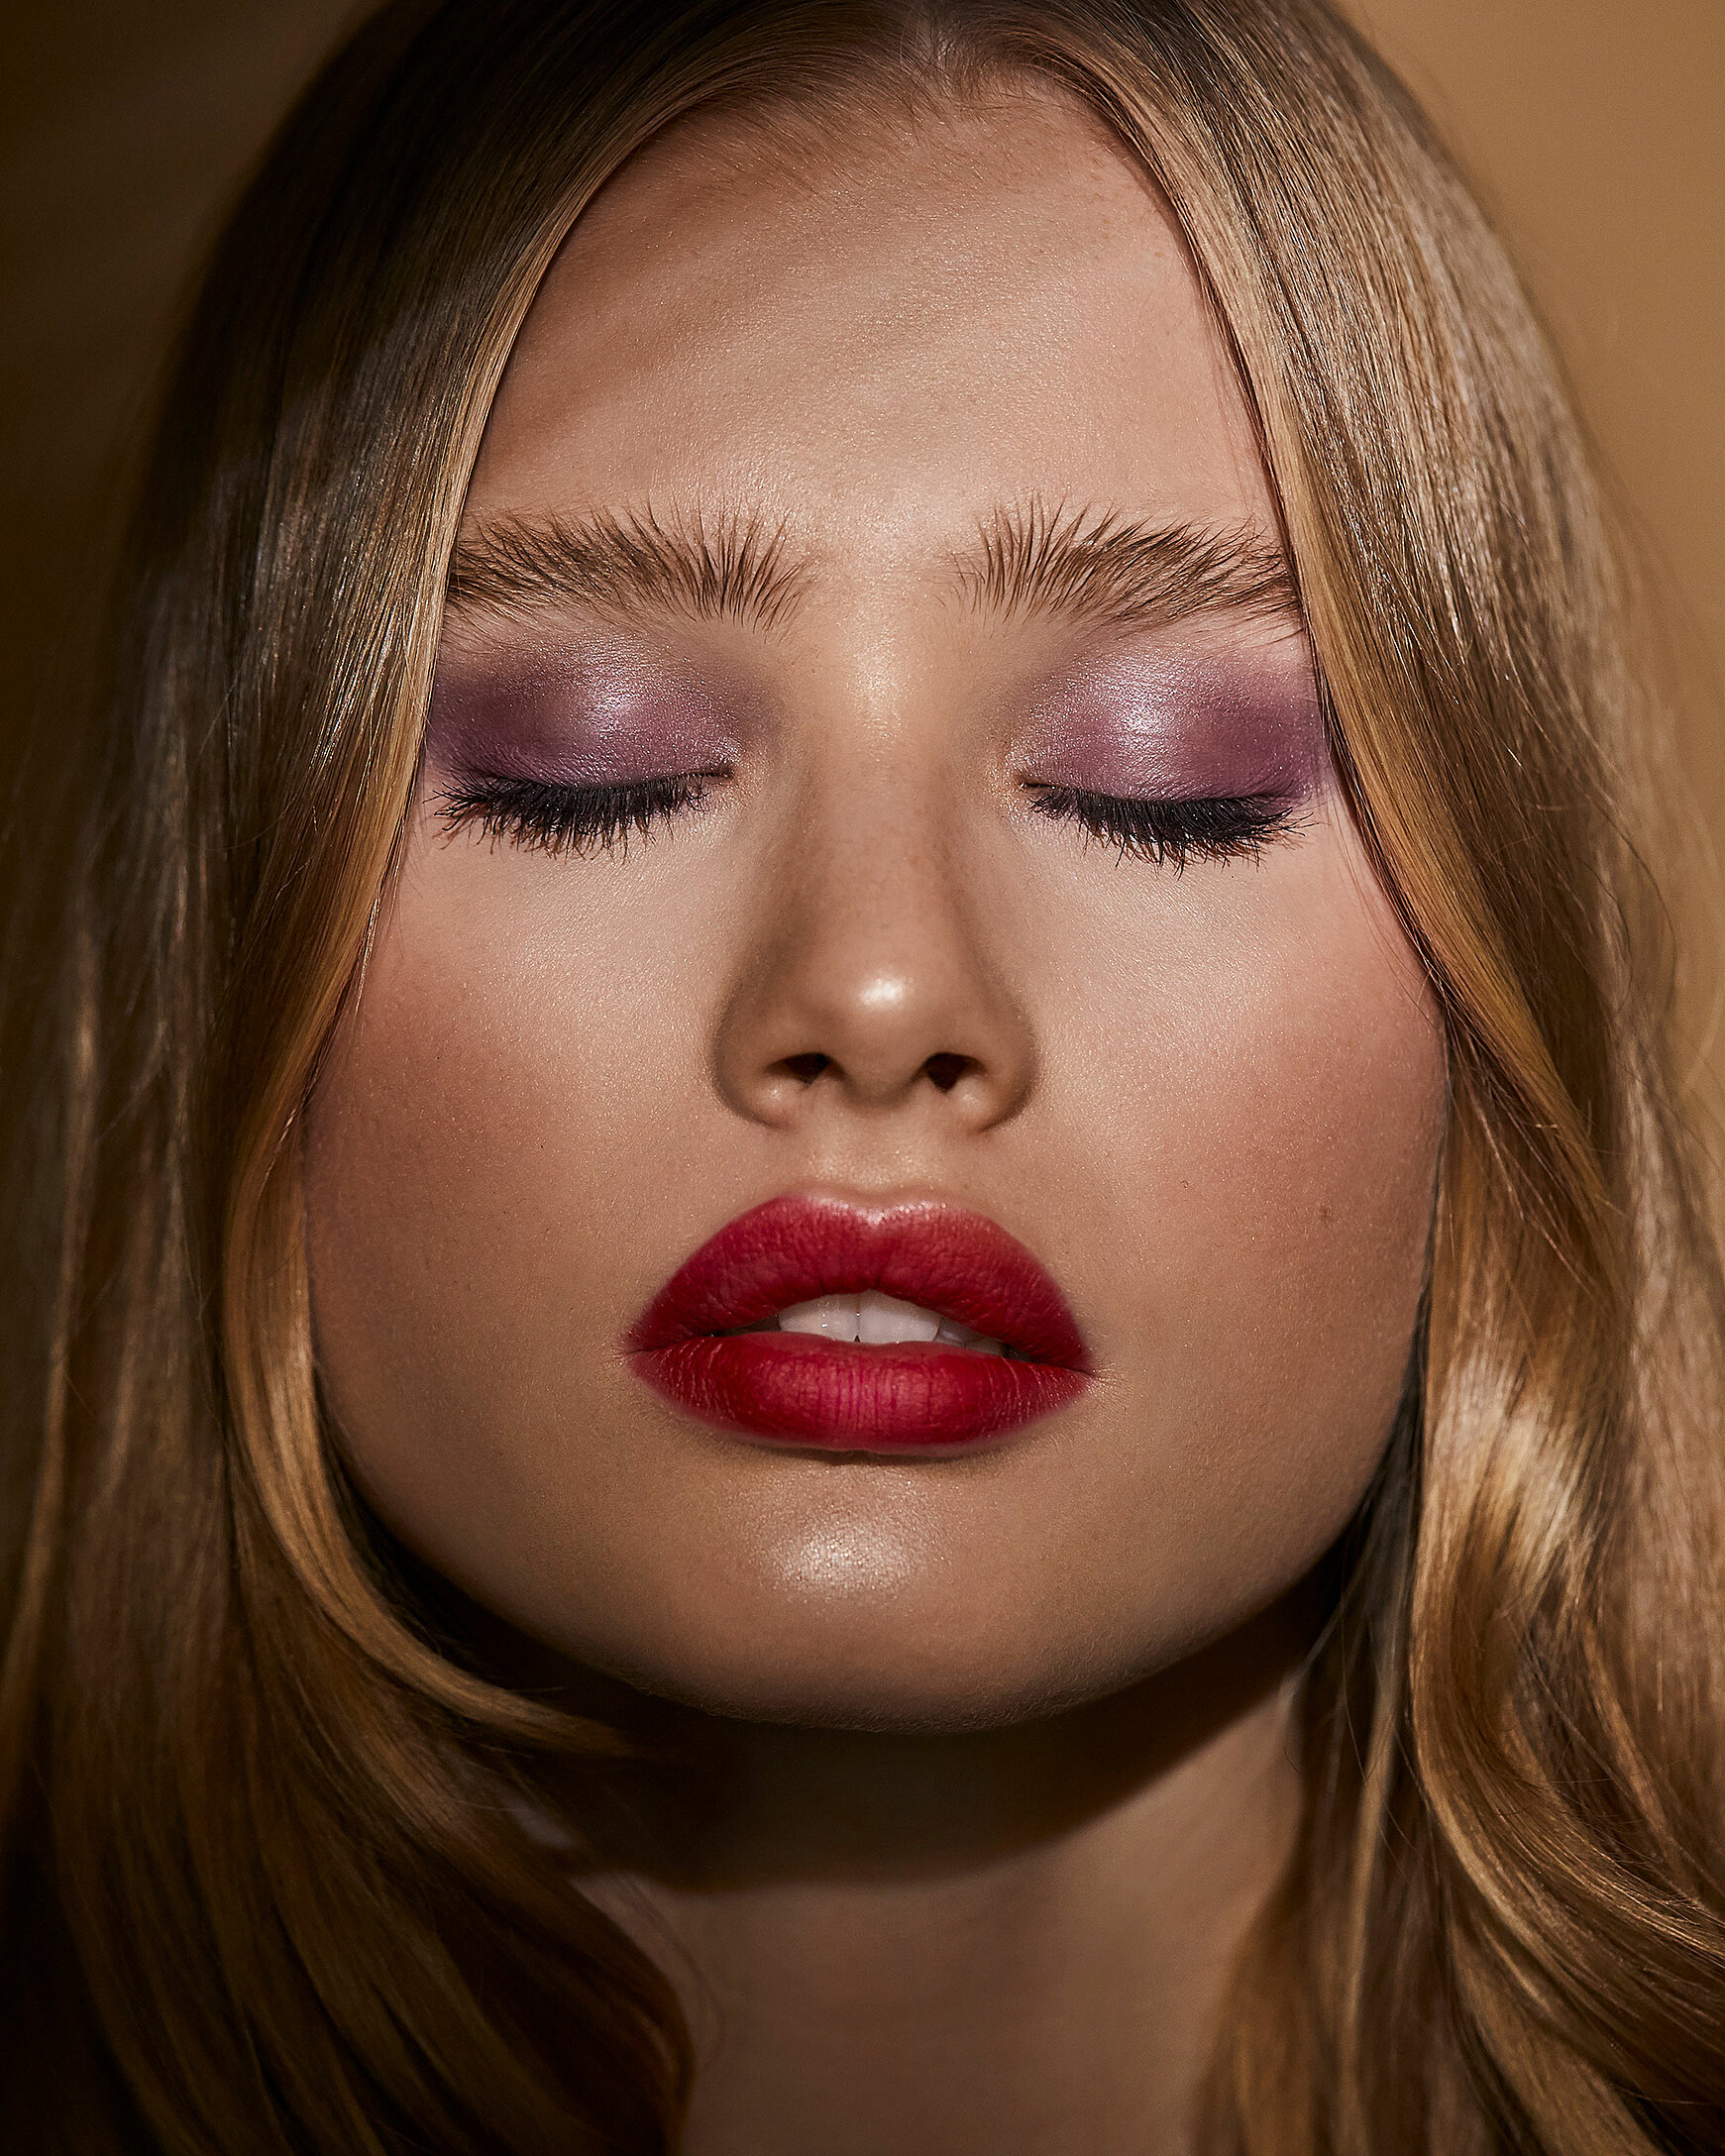 A close-up of a blonde female model closed her eyes. A colorful makeup with red lips and purple eye shadow